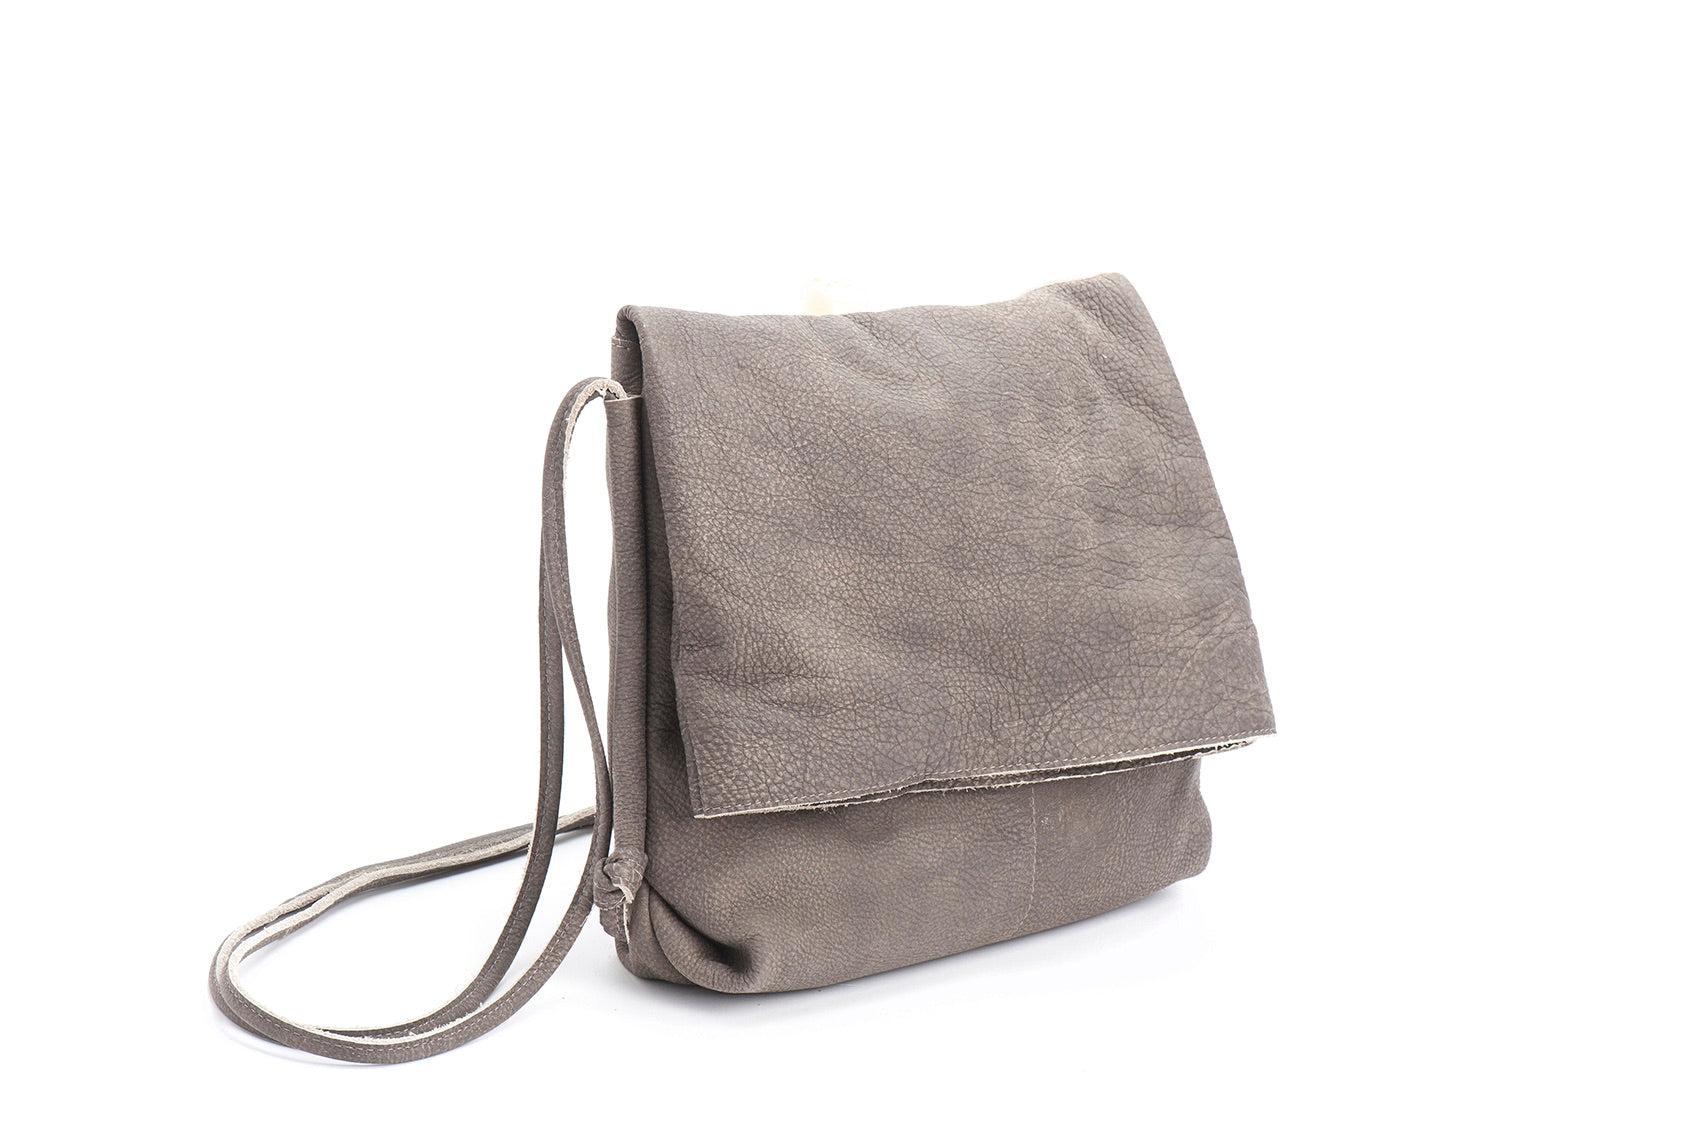 Shoulder bag/ Crossbody-bag - Avi Algrisi